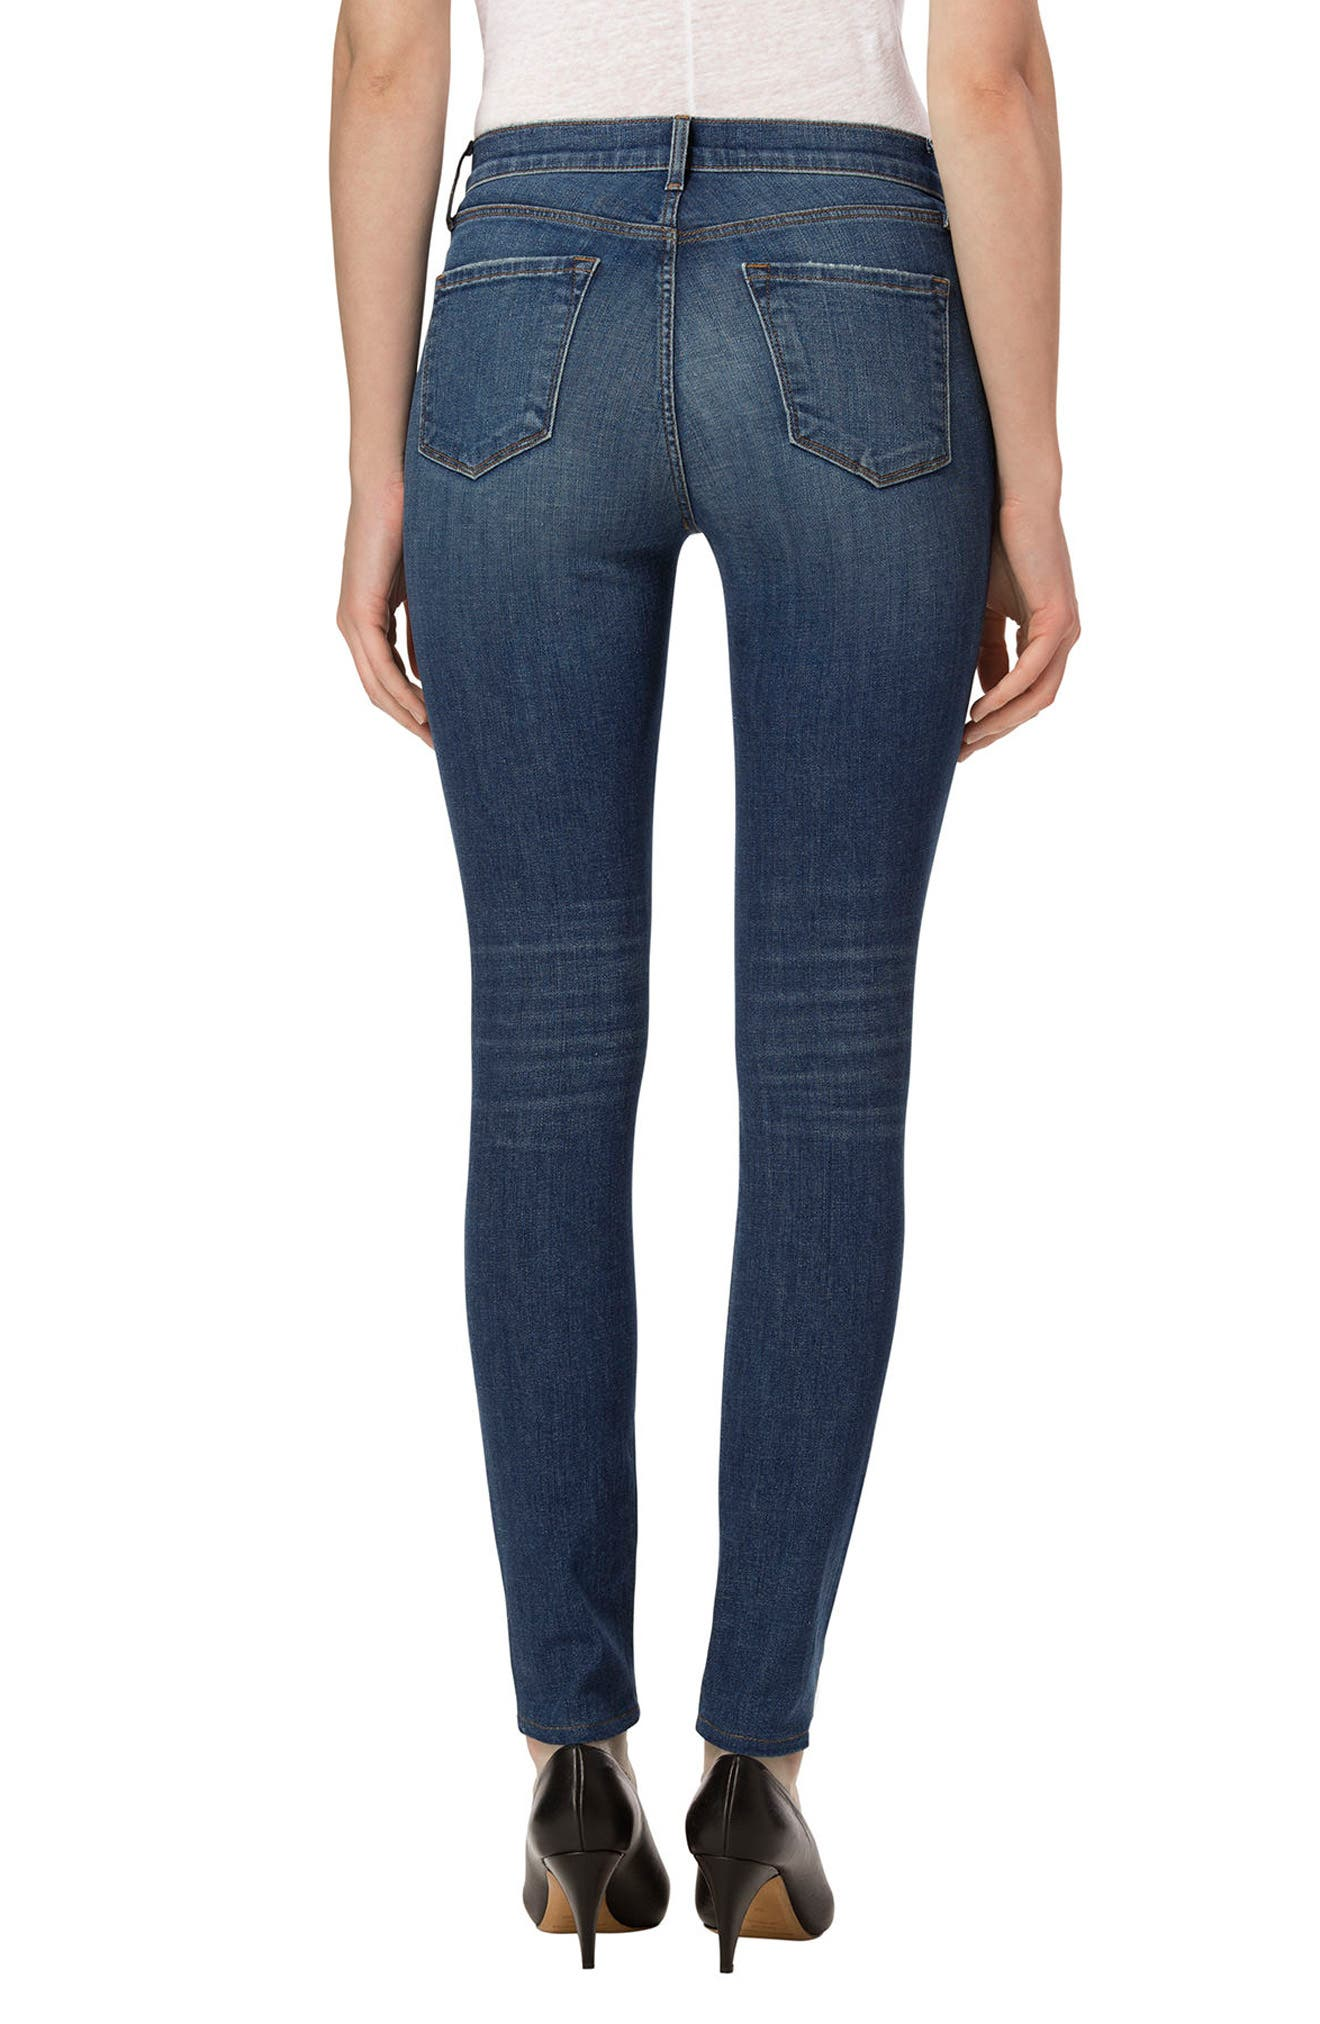 J BRAND,                             'Maria' High Rise Skinny Jeans,                             Alternate thumbnail 2, color,                             425